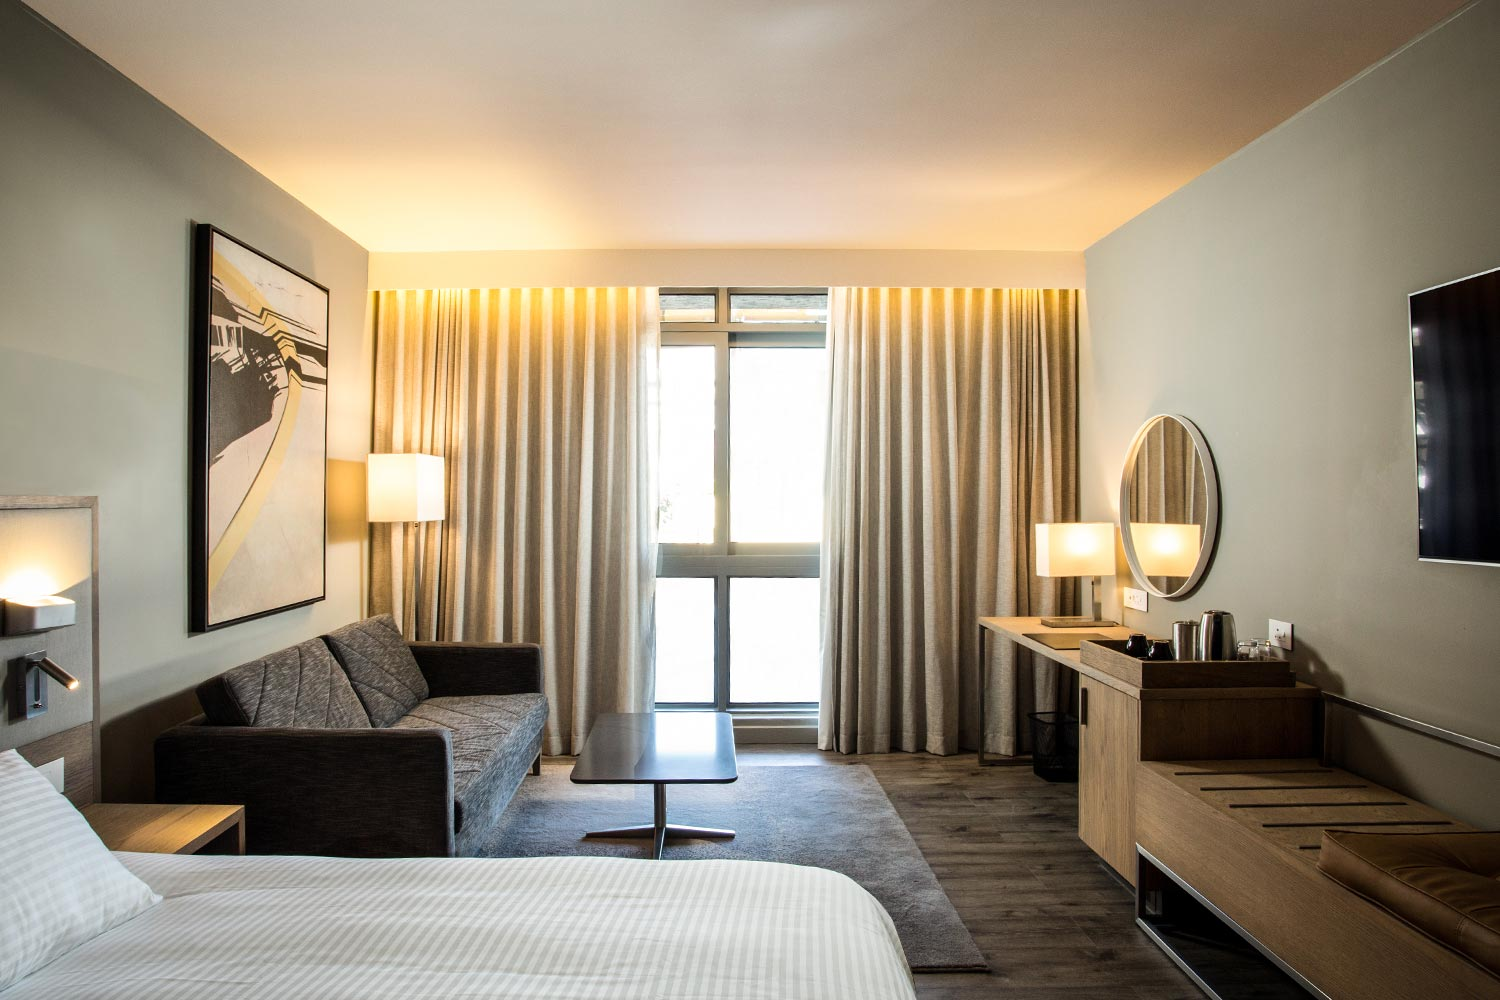 AC Hotel by Marriott rooms